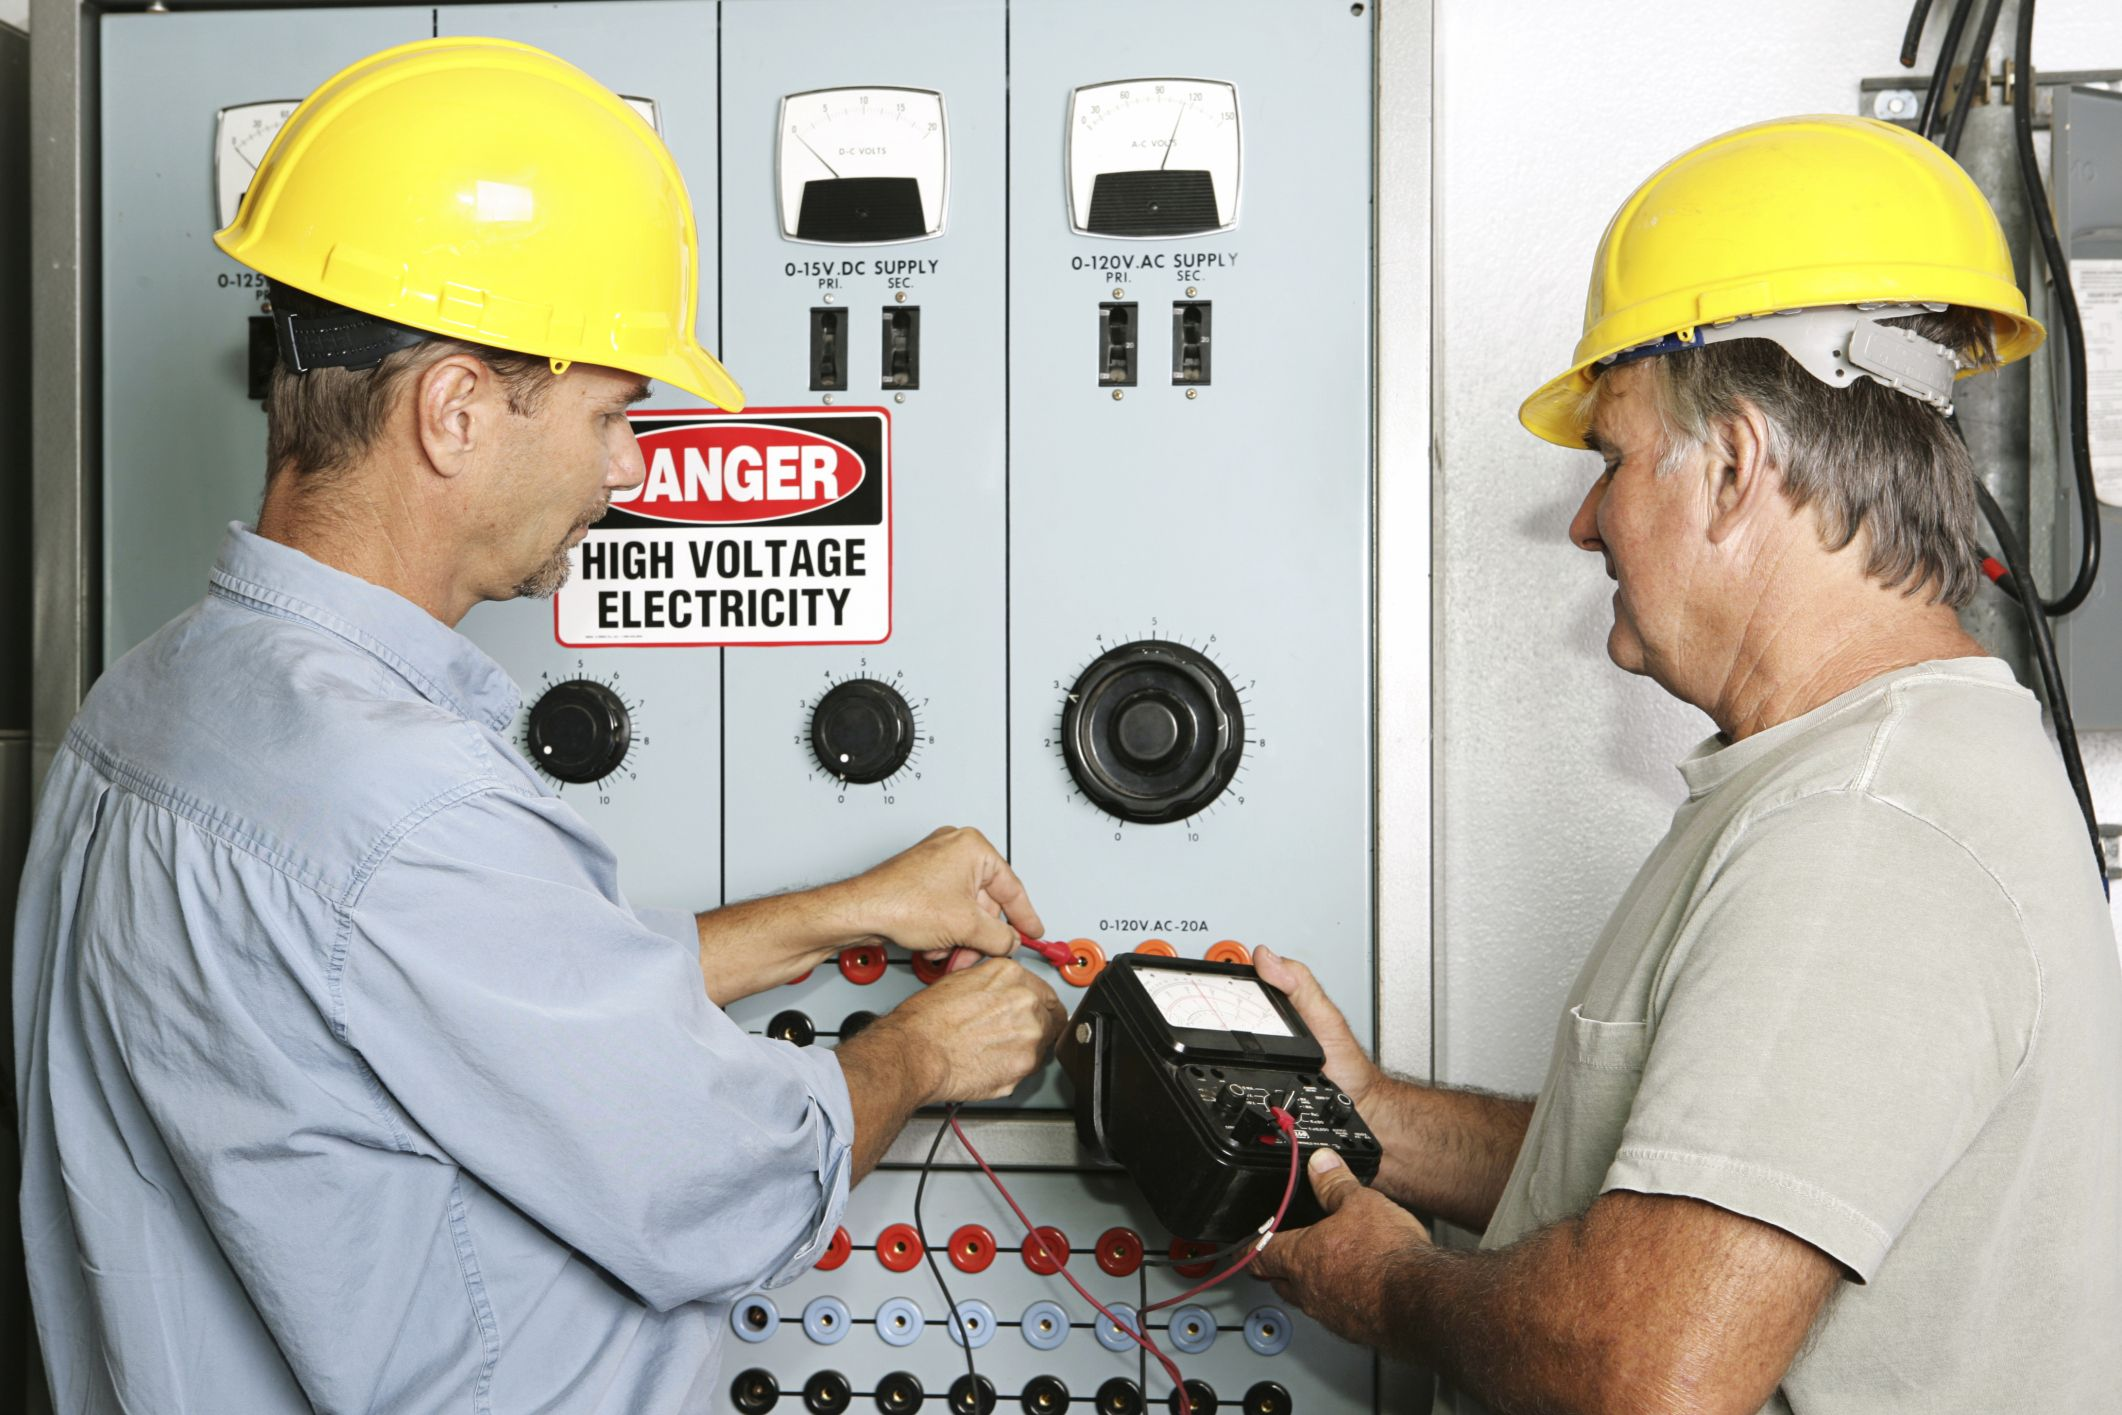 Need An Electrician Fast In Burien Regional Contact Topline Electricians Burien For A Free Electrical E Electrician Services Emergency Electrician Electrician